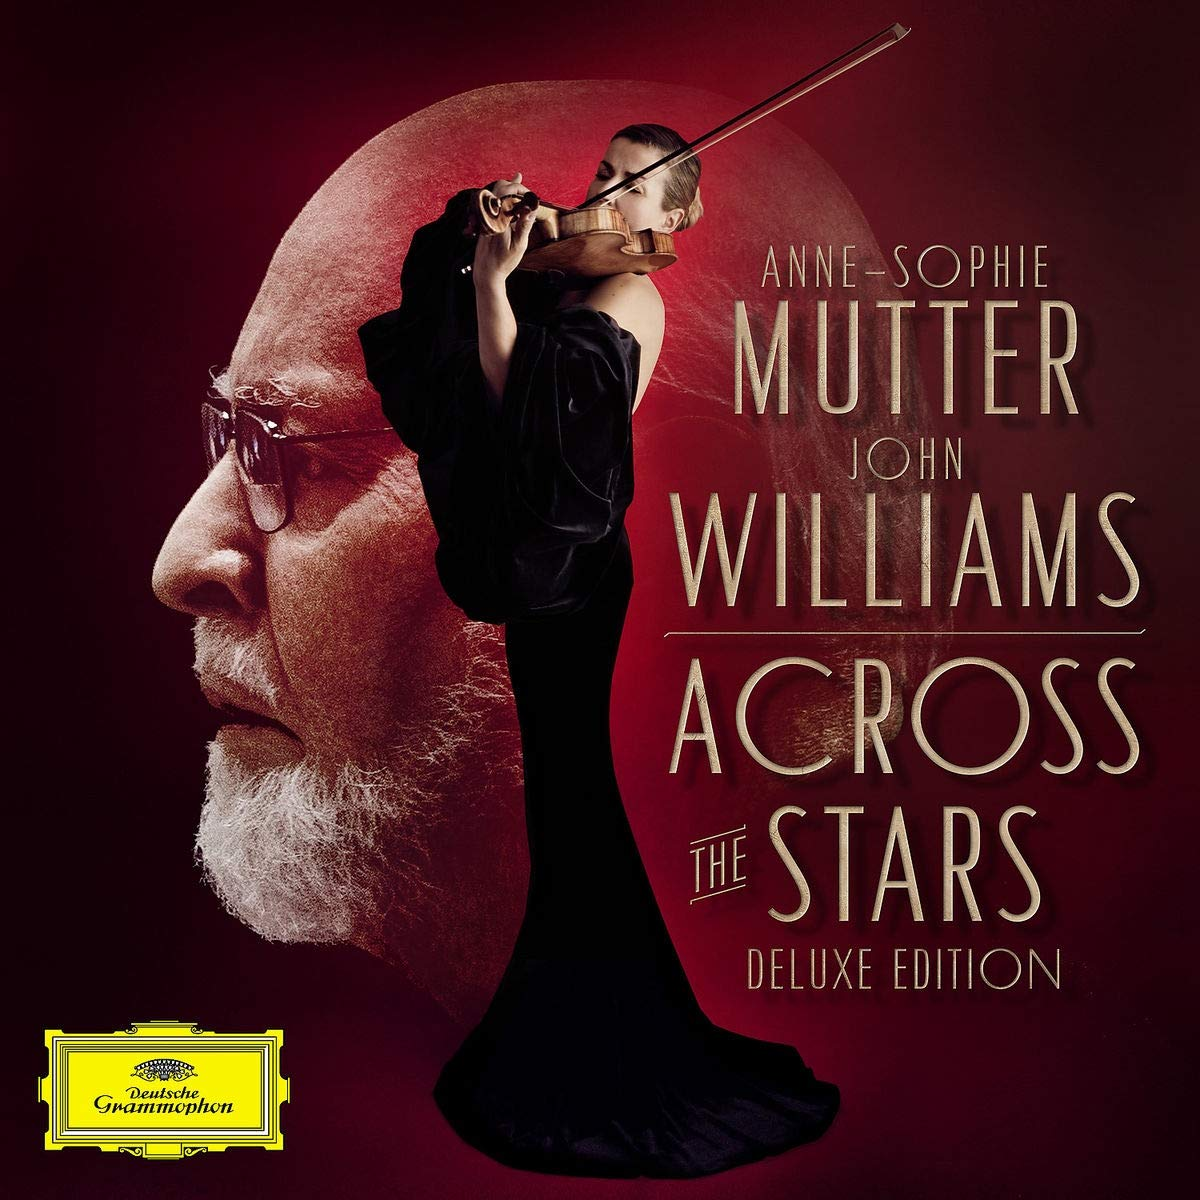 Across the Stars [CD/DVD][Deluxe] by Deutsche Grammophon